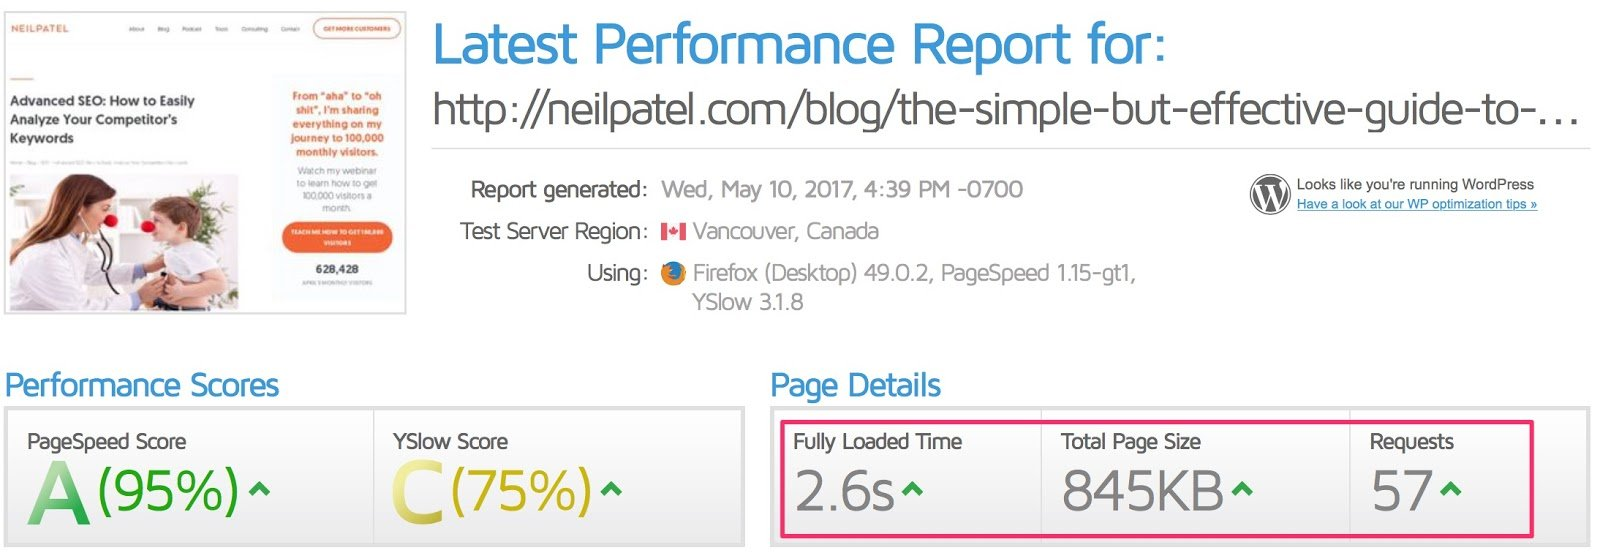 Latest Performance Report for http neilpatel com blog the simple but effective guide to keyword competition analysis GTmetrix